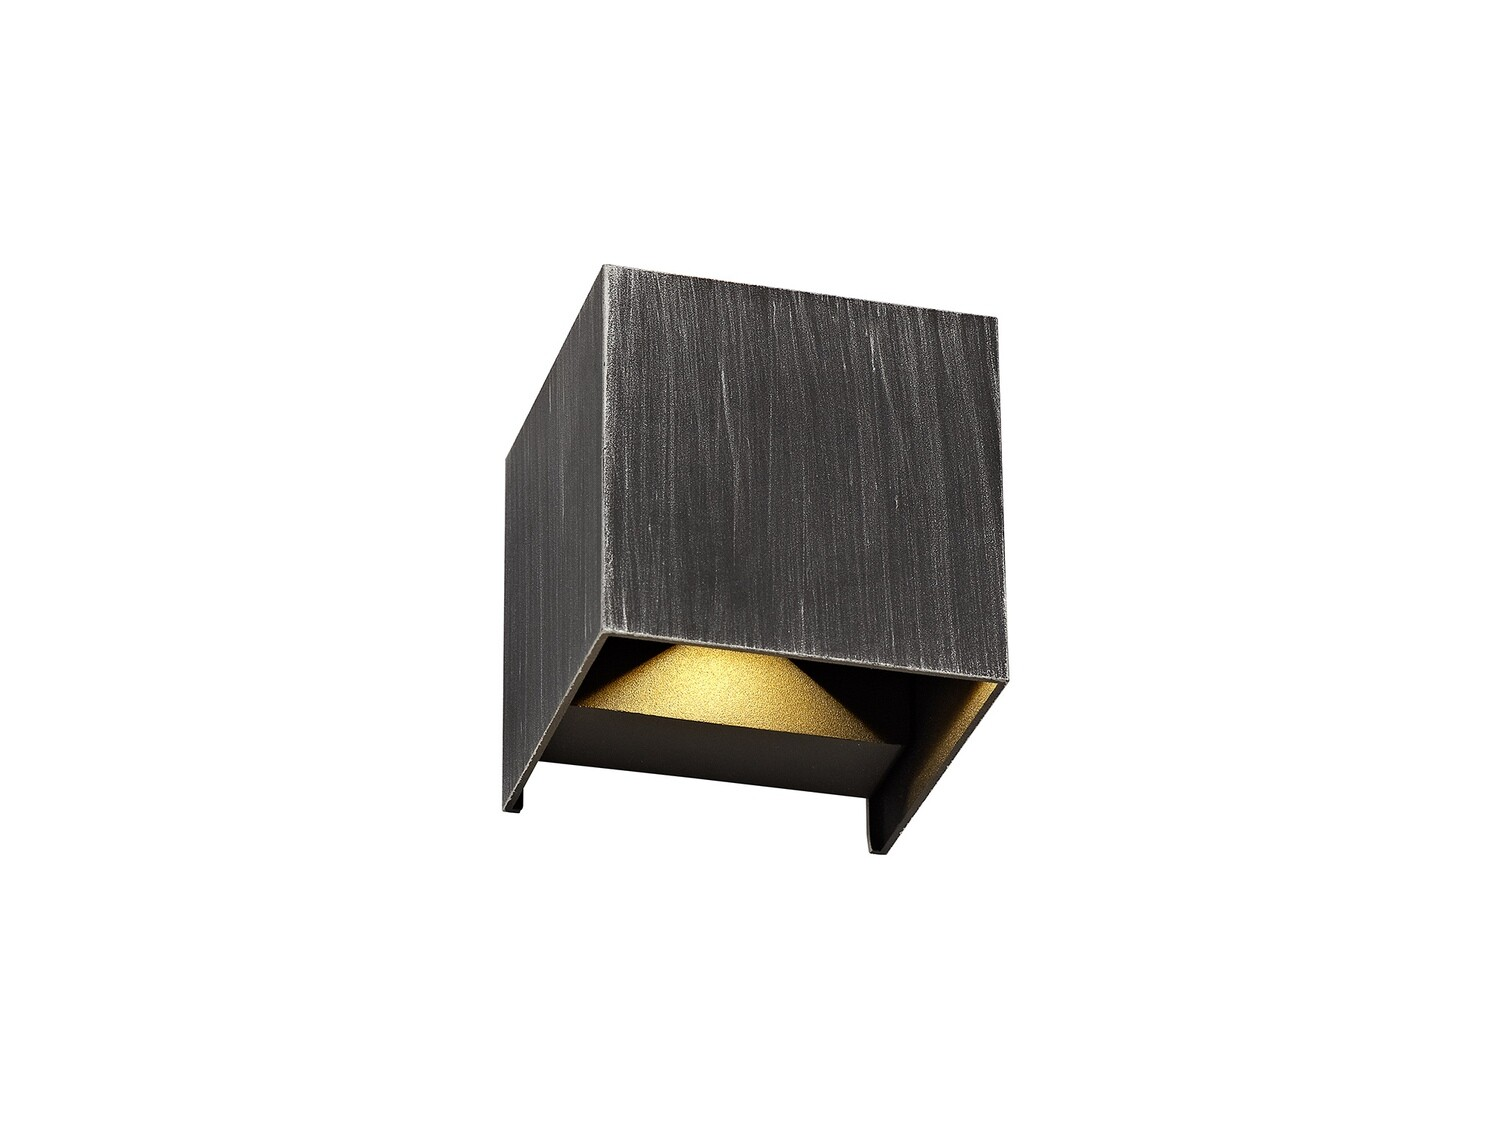 Boketto Up & Downward Lighting Wall Lamp 2 x 3W LED, 3000K 400lm IP54 Black/Silver